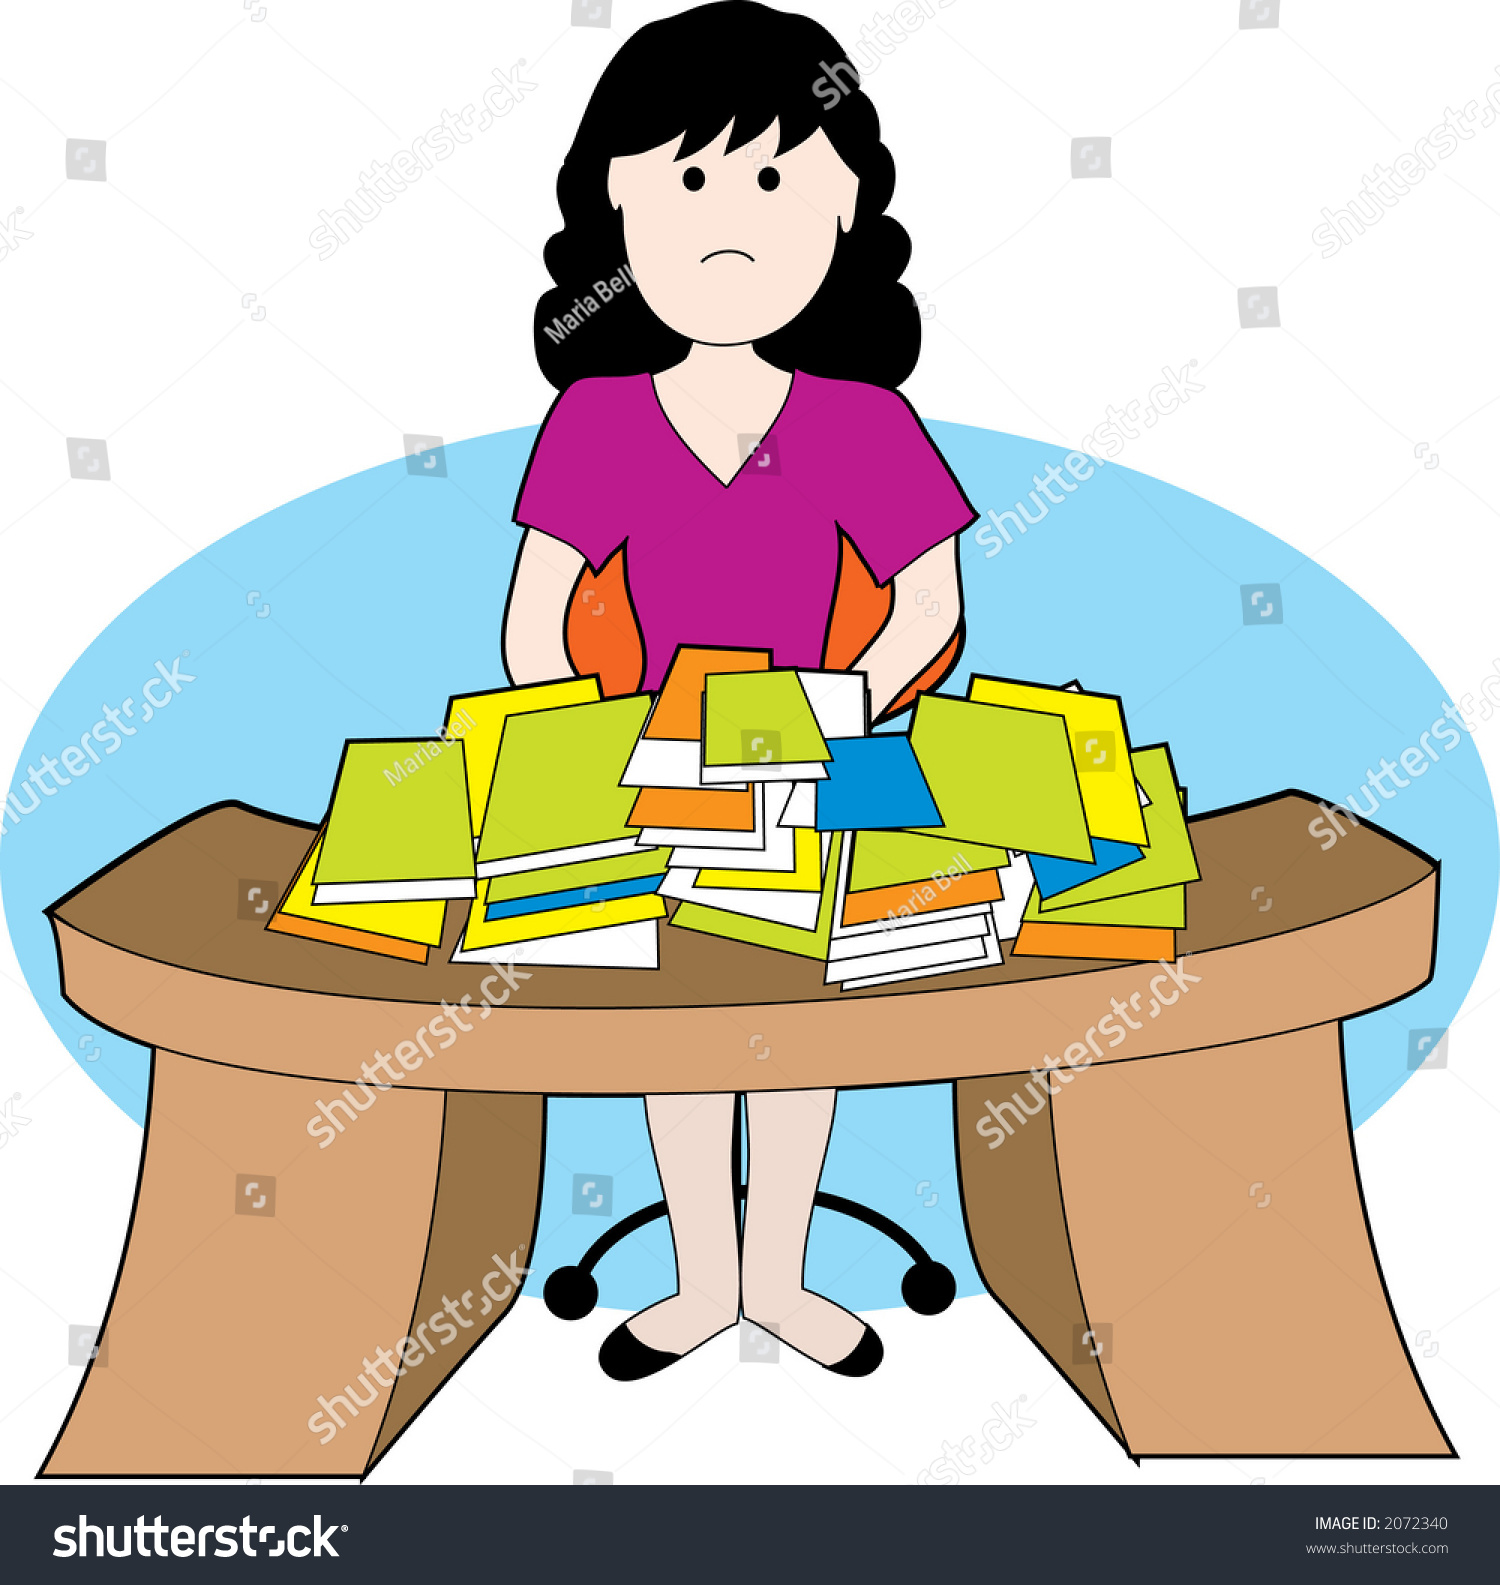 woman frustrated lots papers messy desk stock vector (royalty free